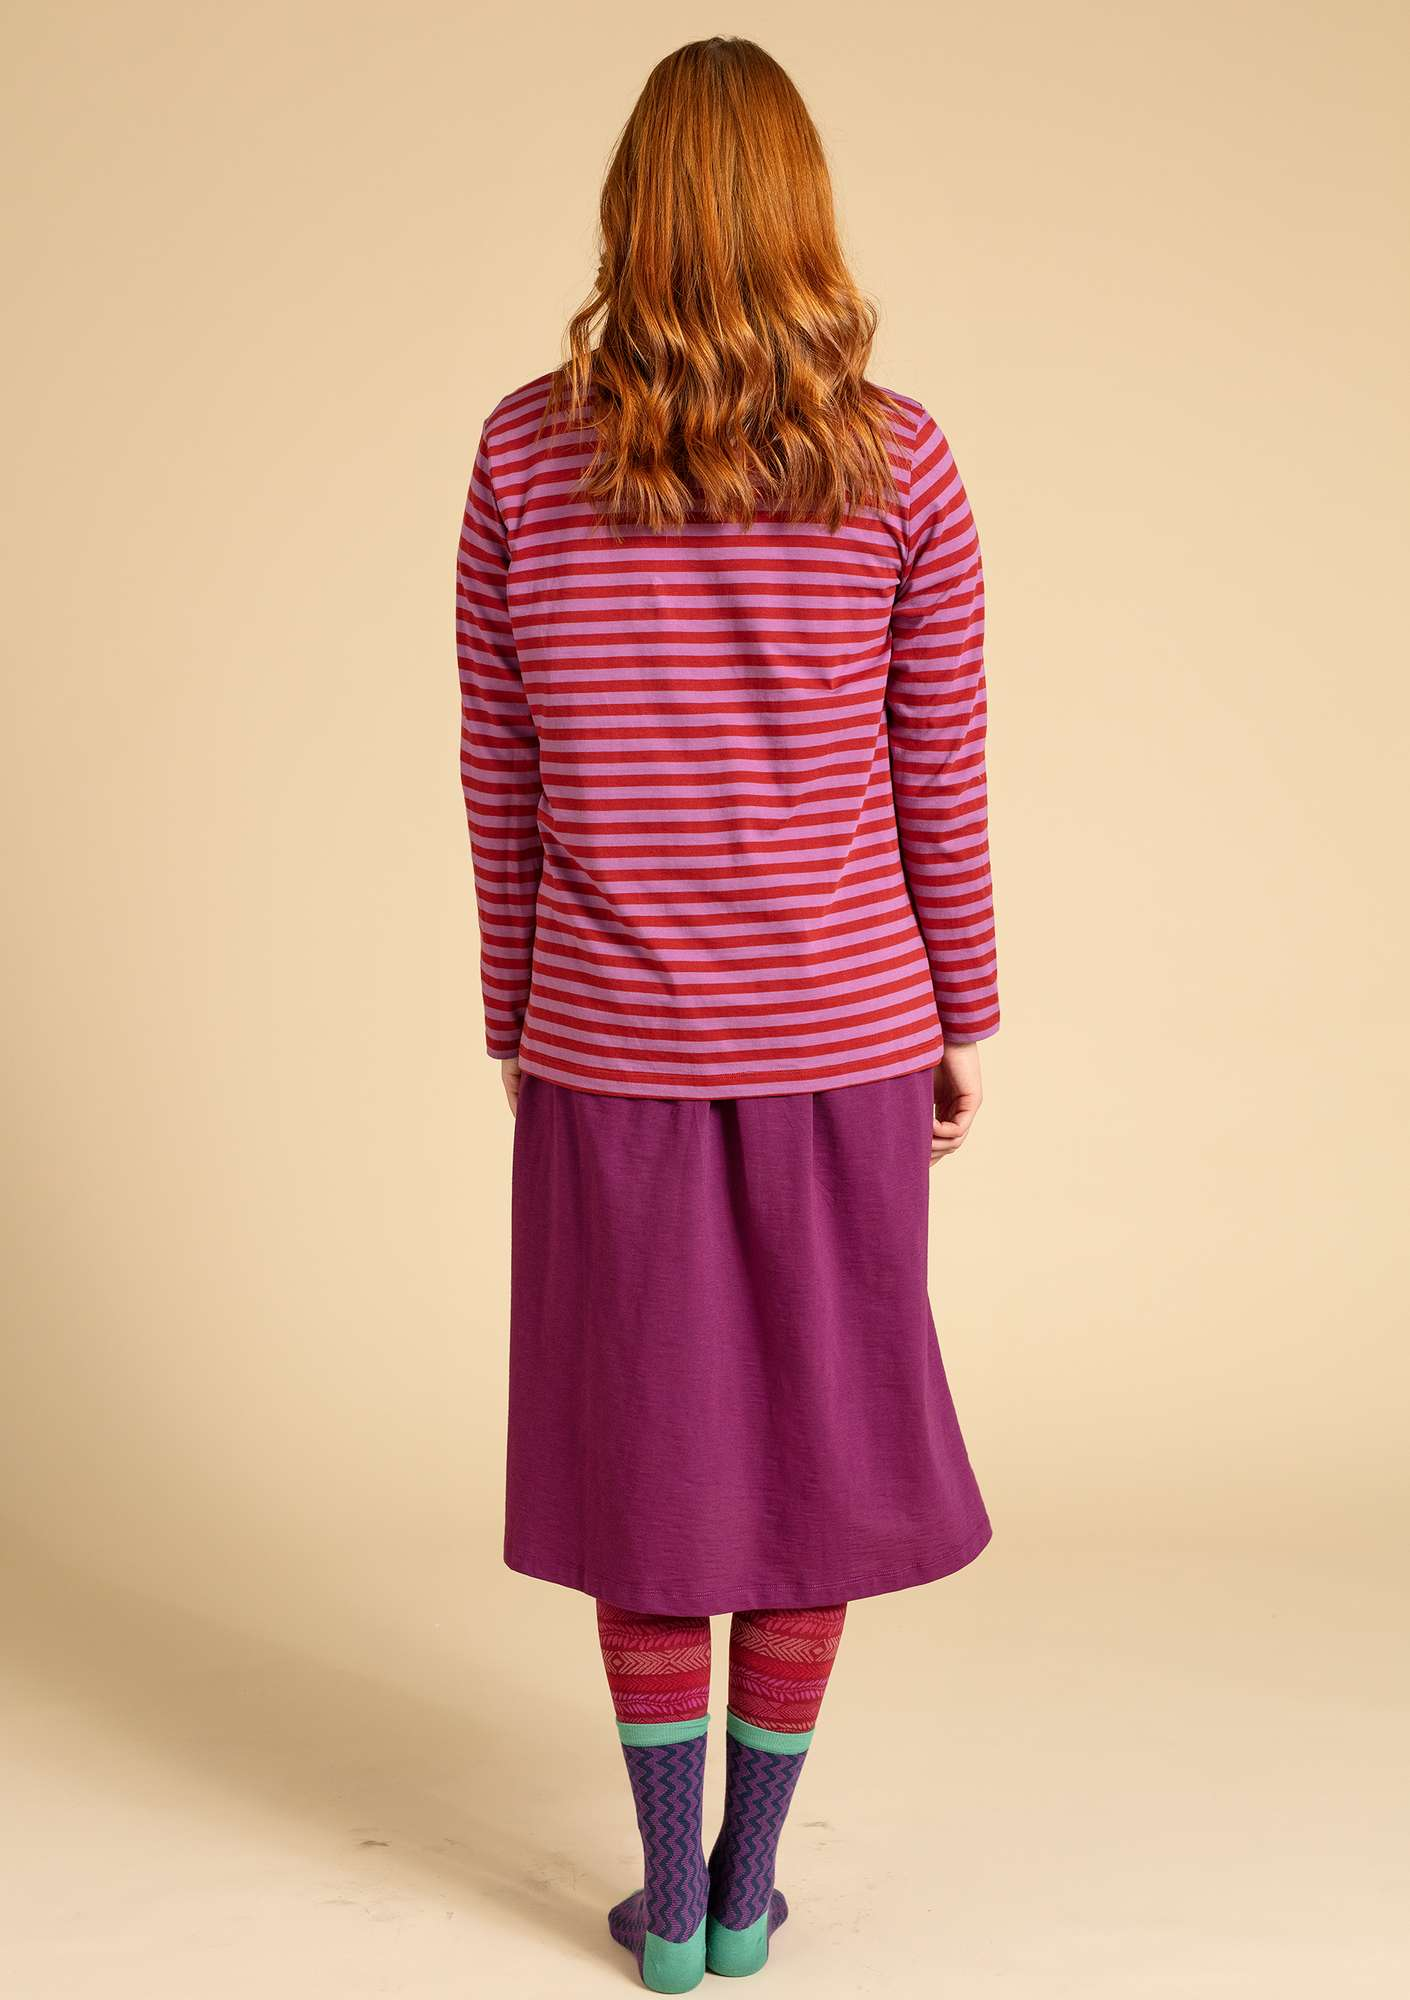 Basic striped shirt in organic cotton madder red/heather